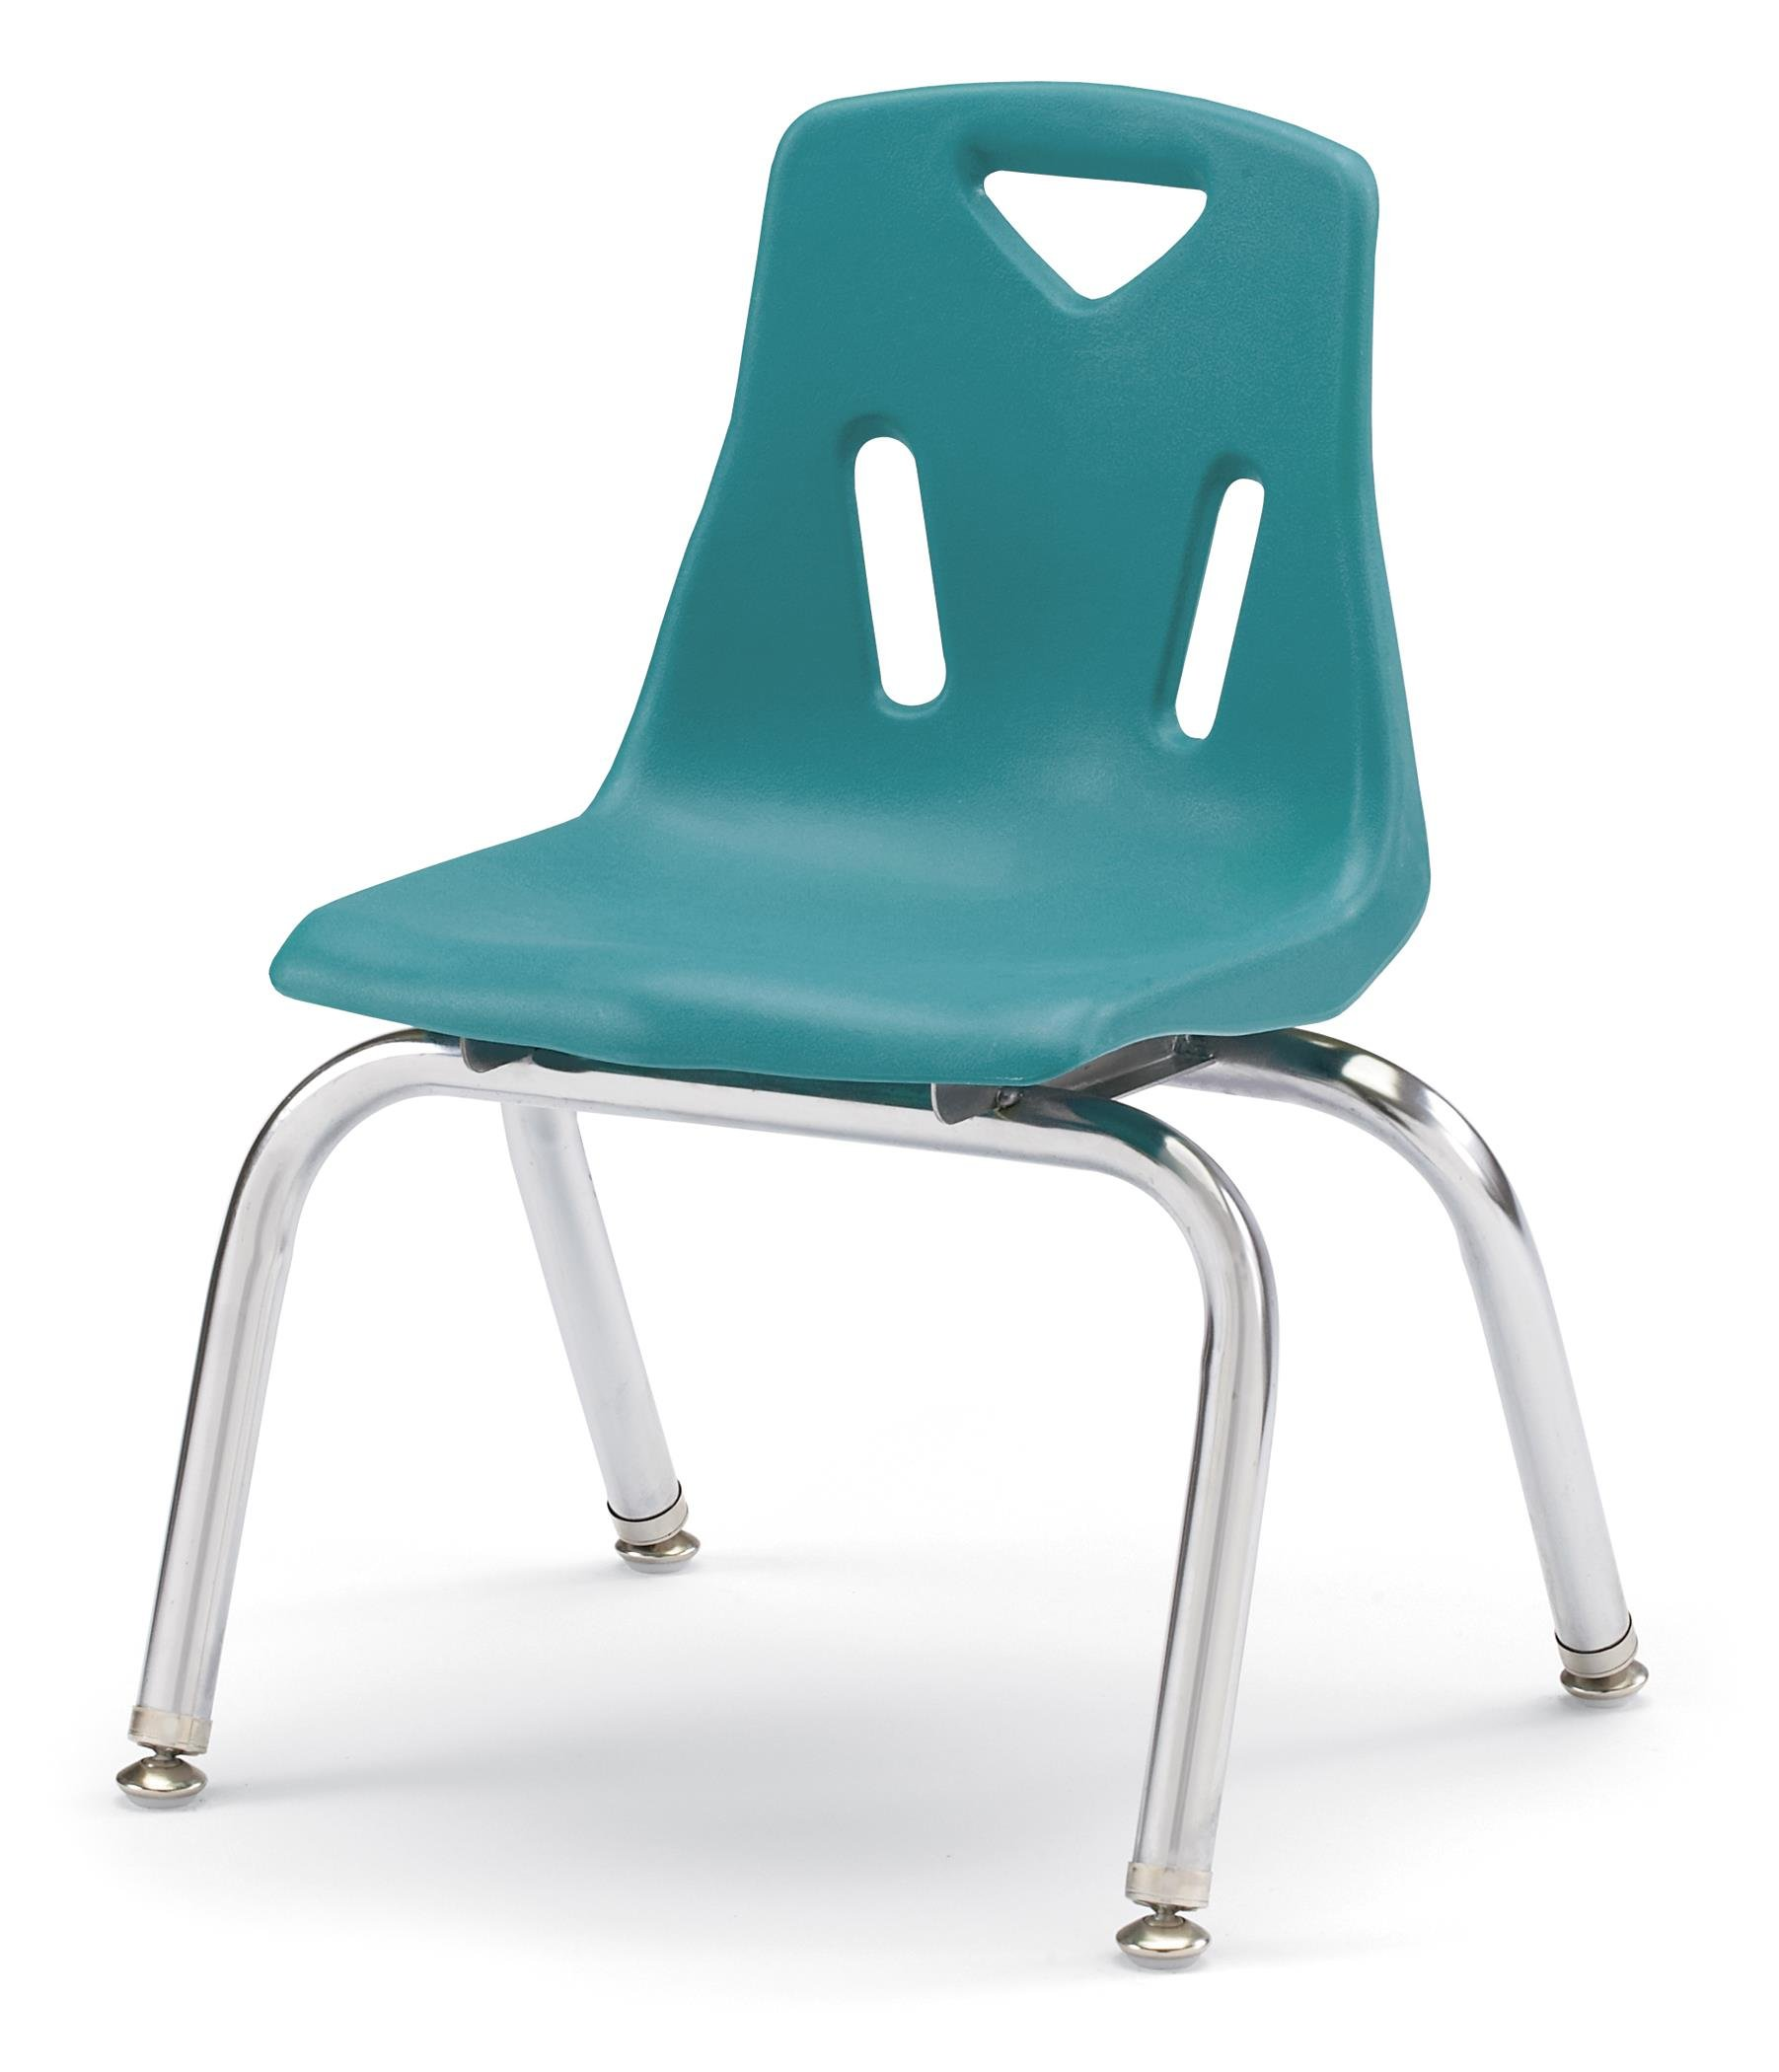 Berries Stacking Chairs with Chrome-Plated Legs Teal/Set of 6/18'' Seat Height